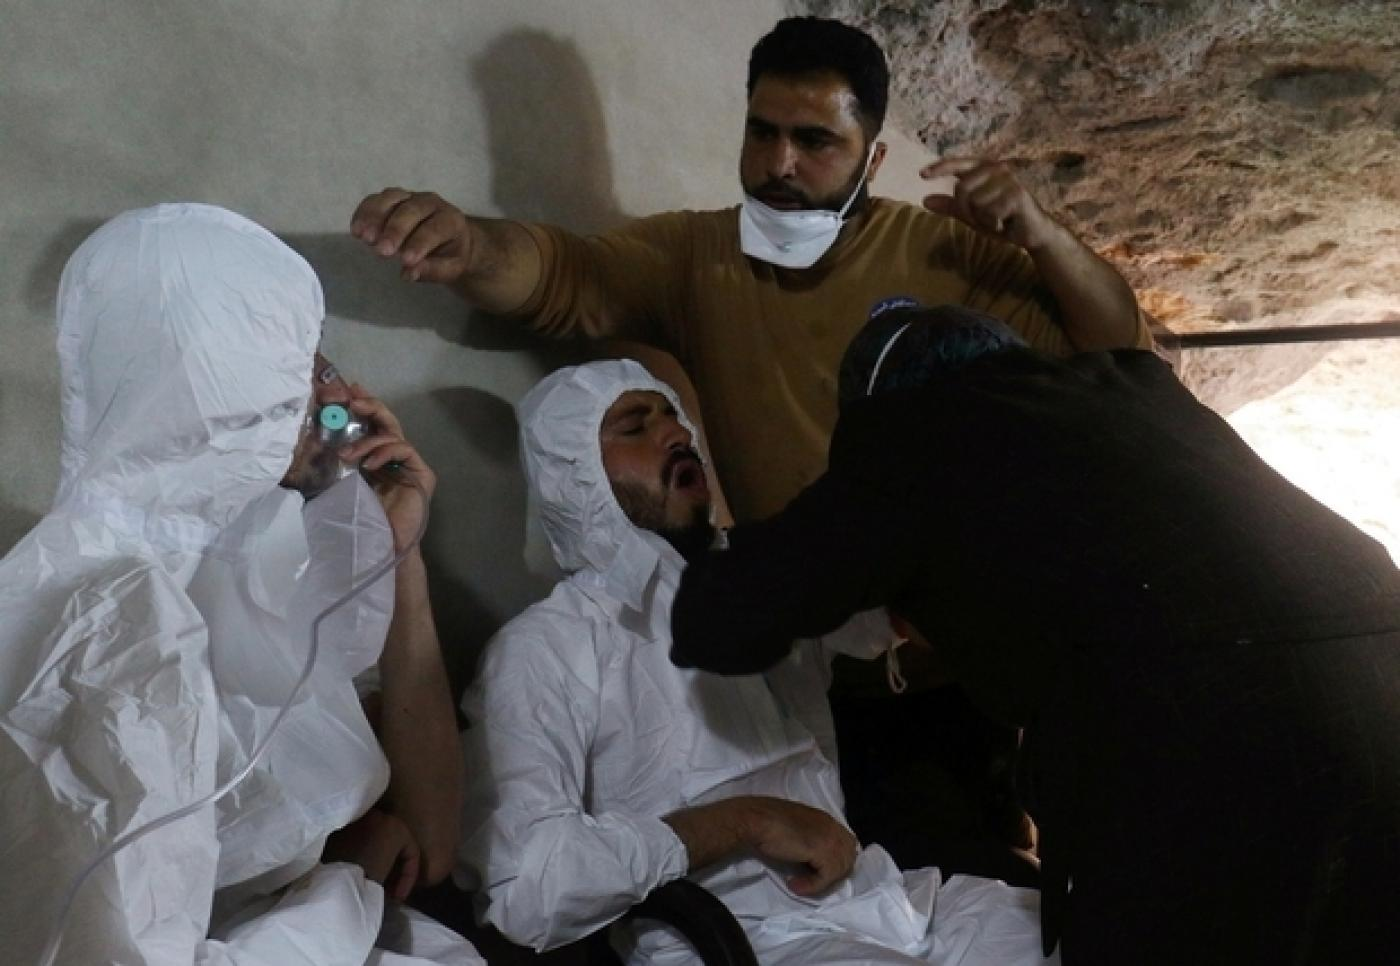 Syria chemical attack: Government used chlorine on civilians in 2018, OPCW rules